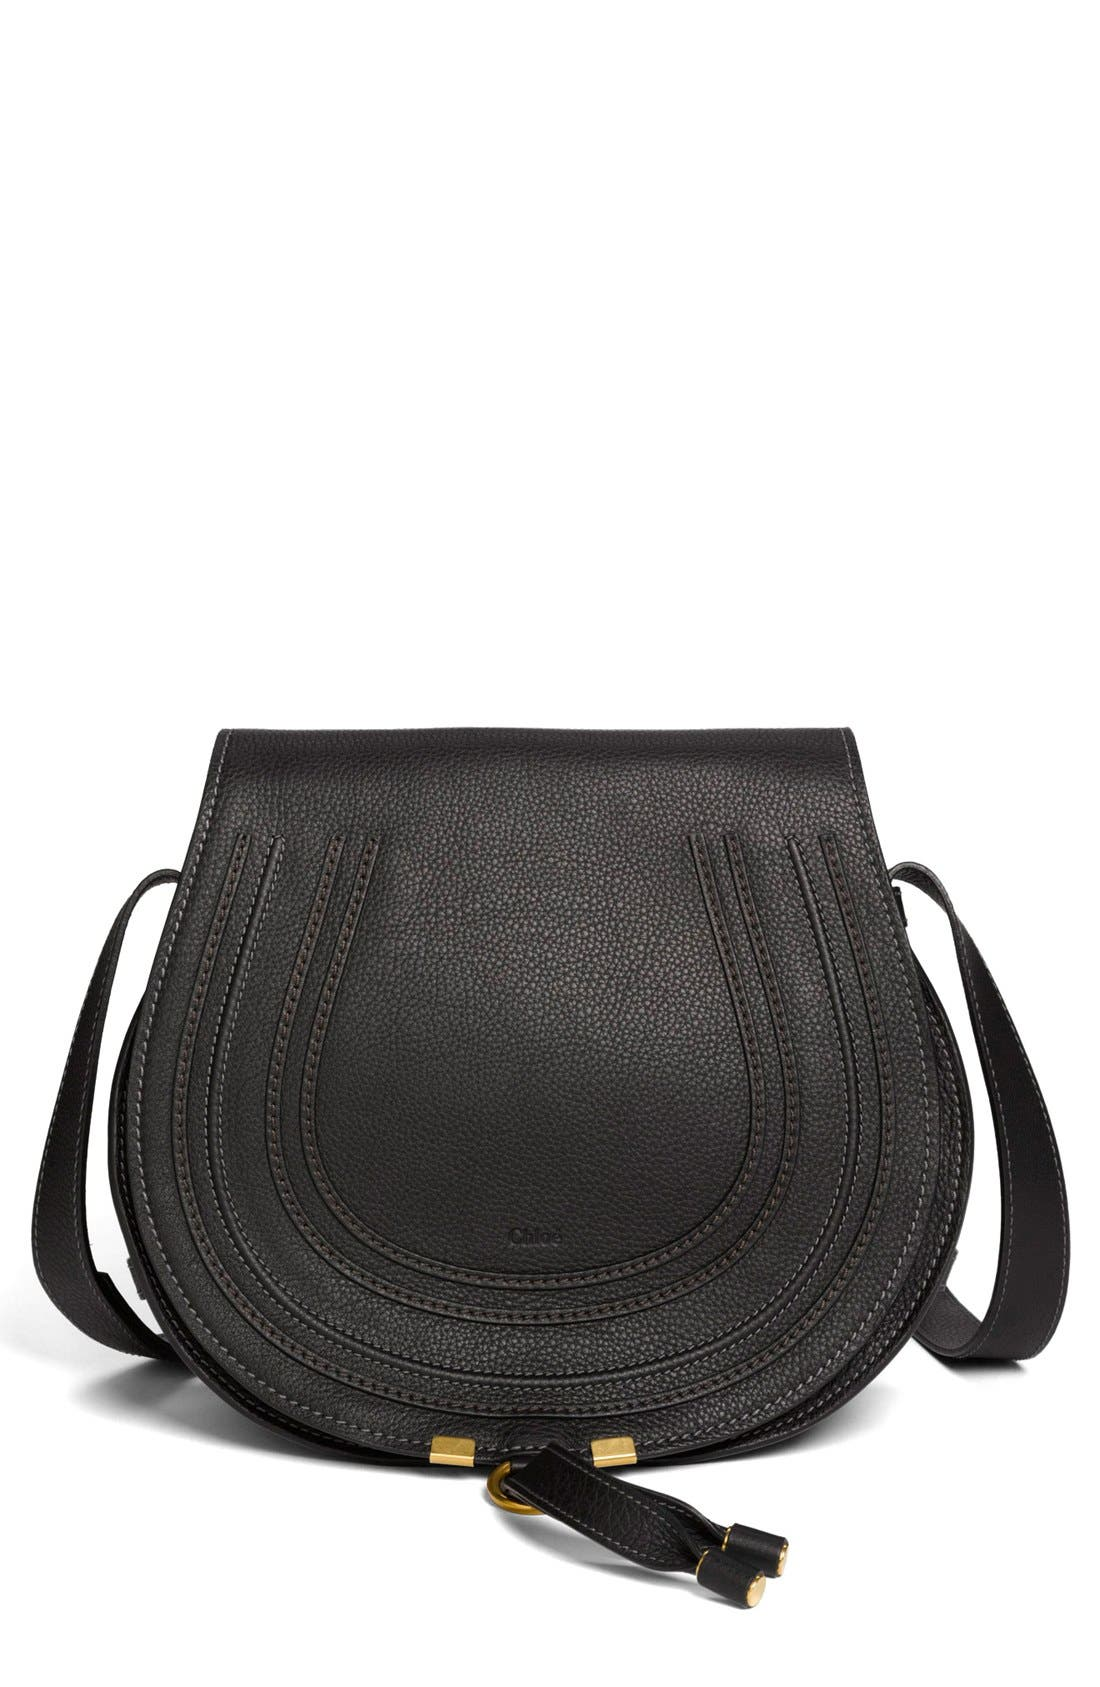 'Marcie - Medium' Leather Crossbody Bag,                         Main,                         color, BLACK GOLD HRDWRE